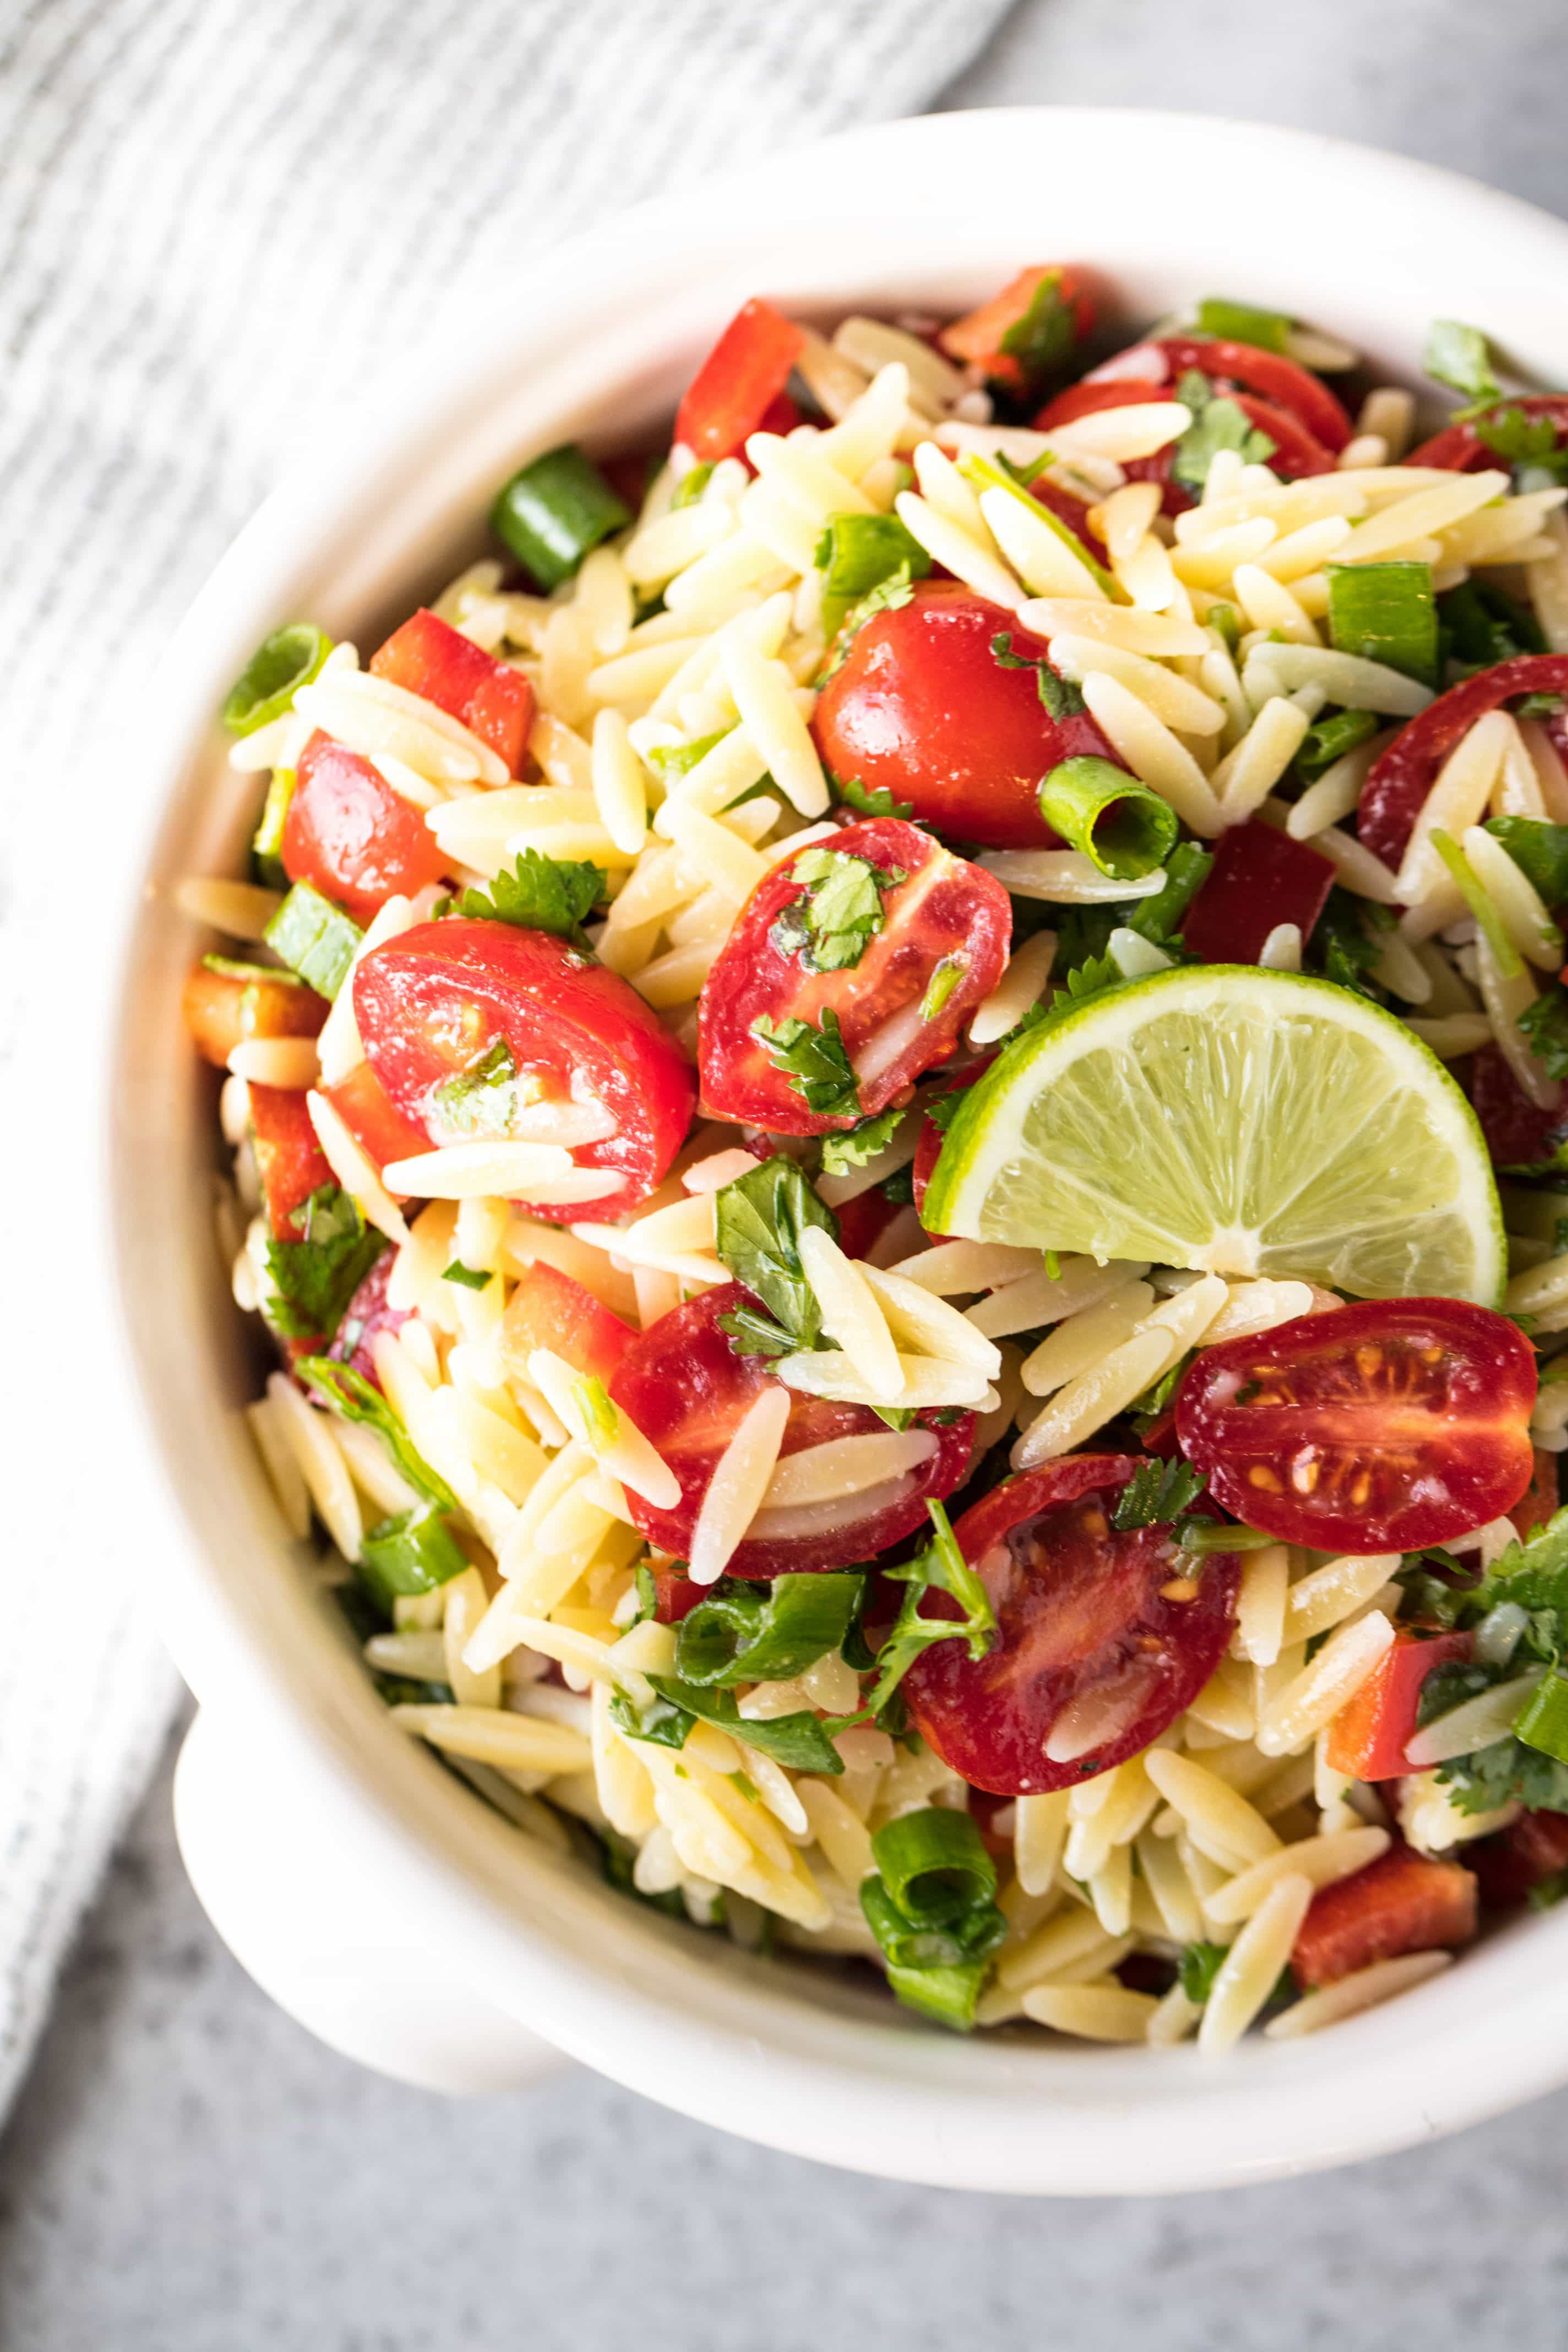 Cilantro-Lime Orzo Pasta Salad is light, refreshing, delicious, and perfect for picnics, potlucks, and backyard barbecues.